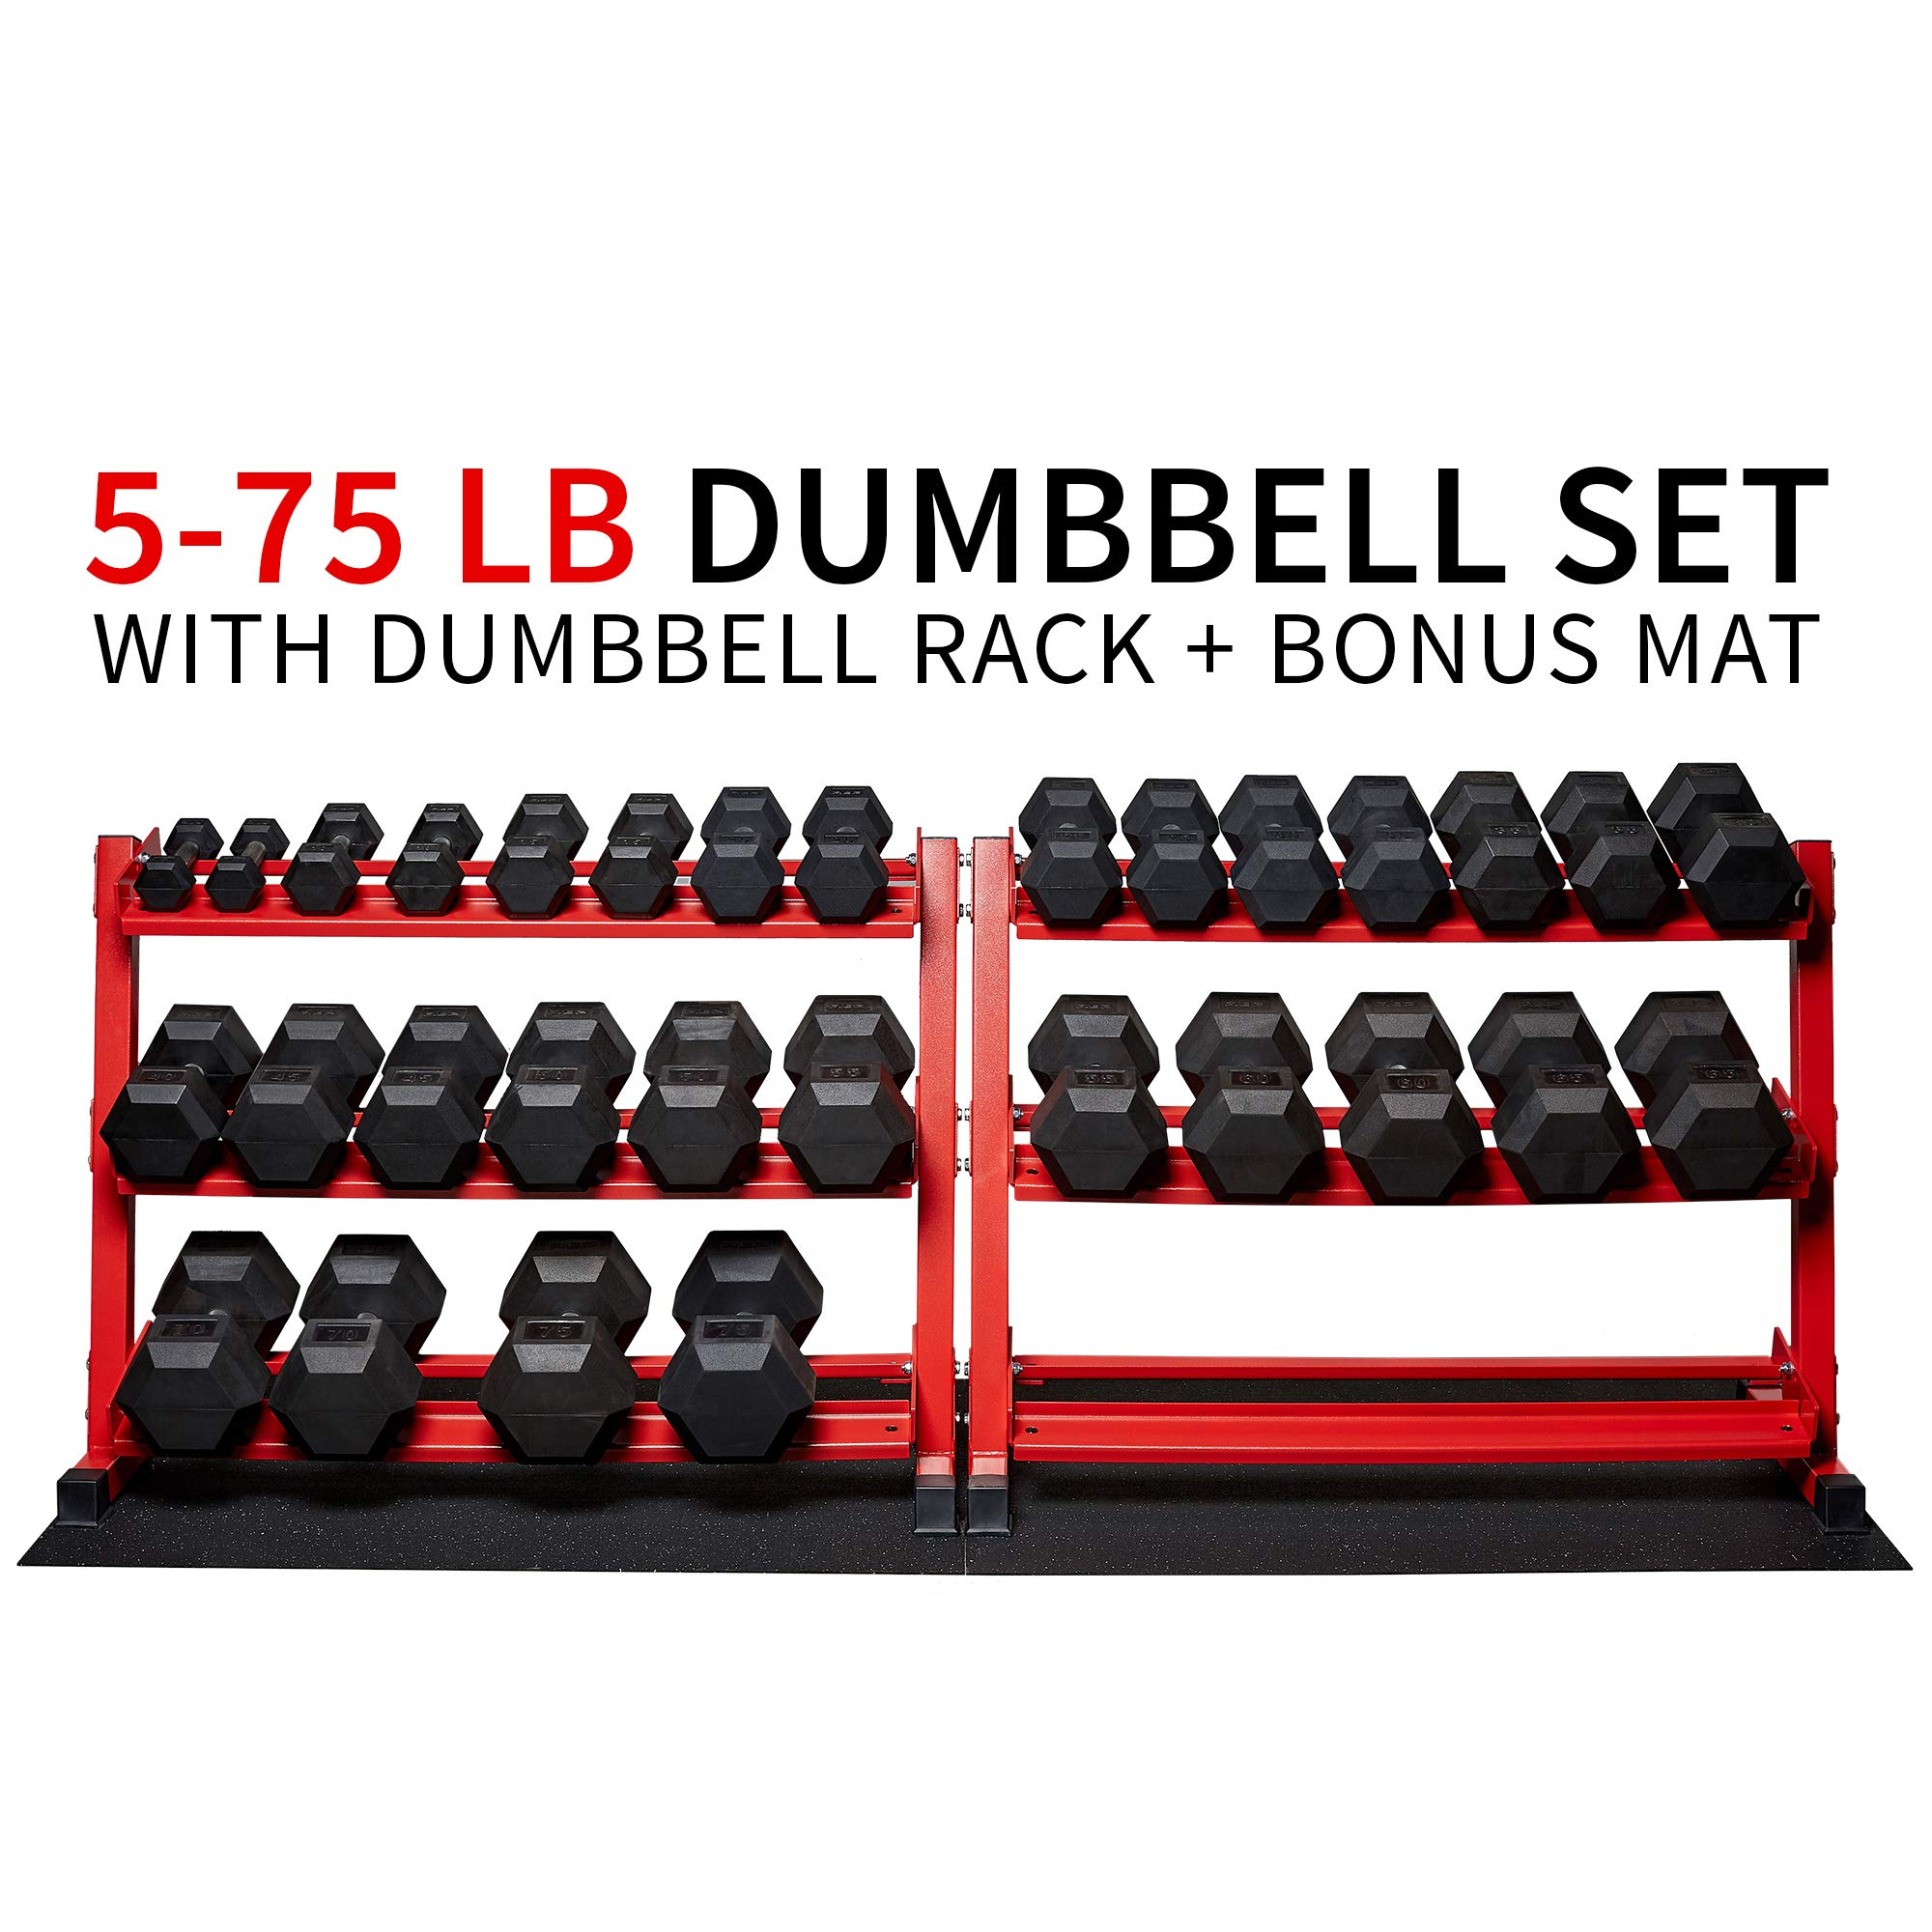 Rep Rubber Hex Dumbbell Set with Racks, 5-50 Set, 5-75 Set, 5-100 Set, 2.5-27.5 Set, 55-75, 80-100, or 105-125 Set. Available with and Without Racks. (OptionB: 5-75withRedStand)